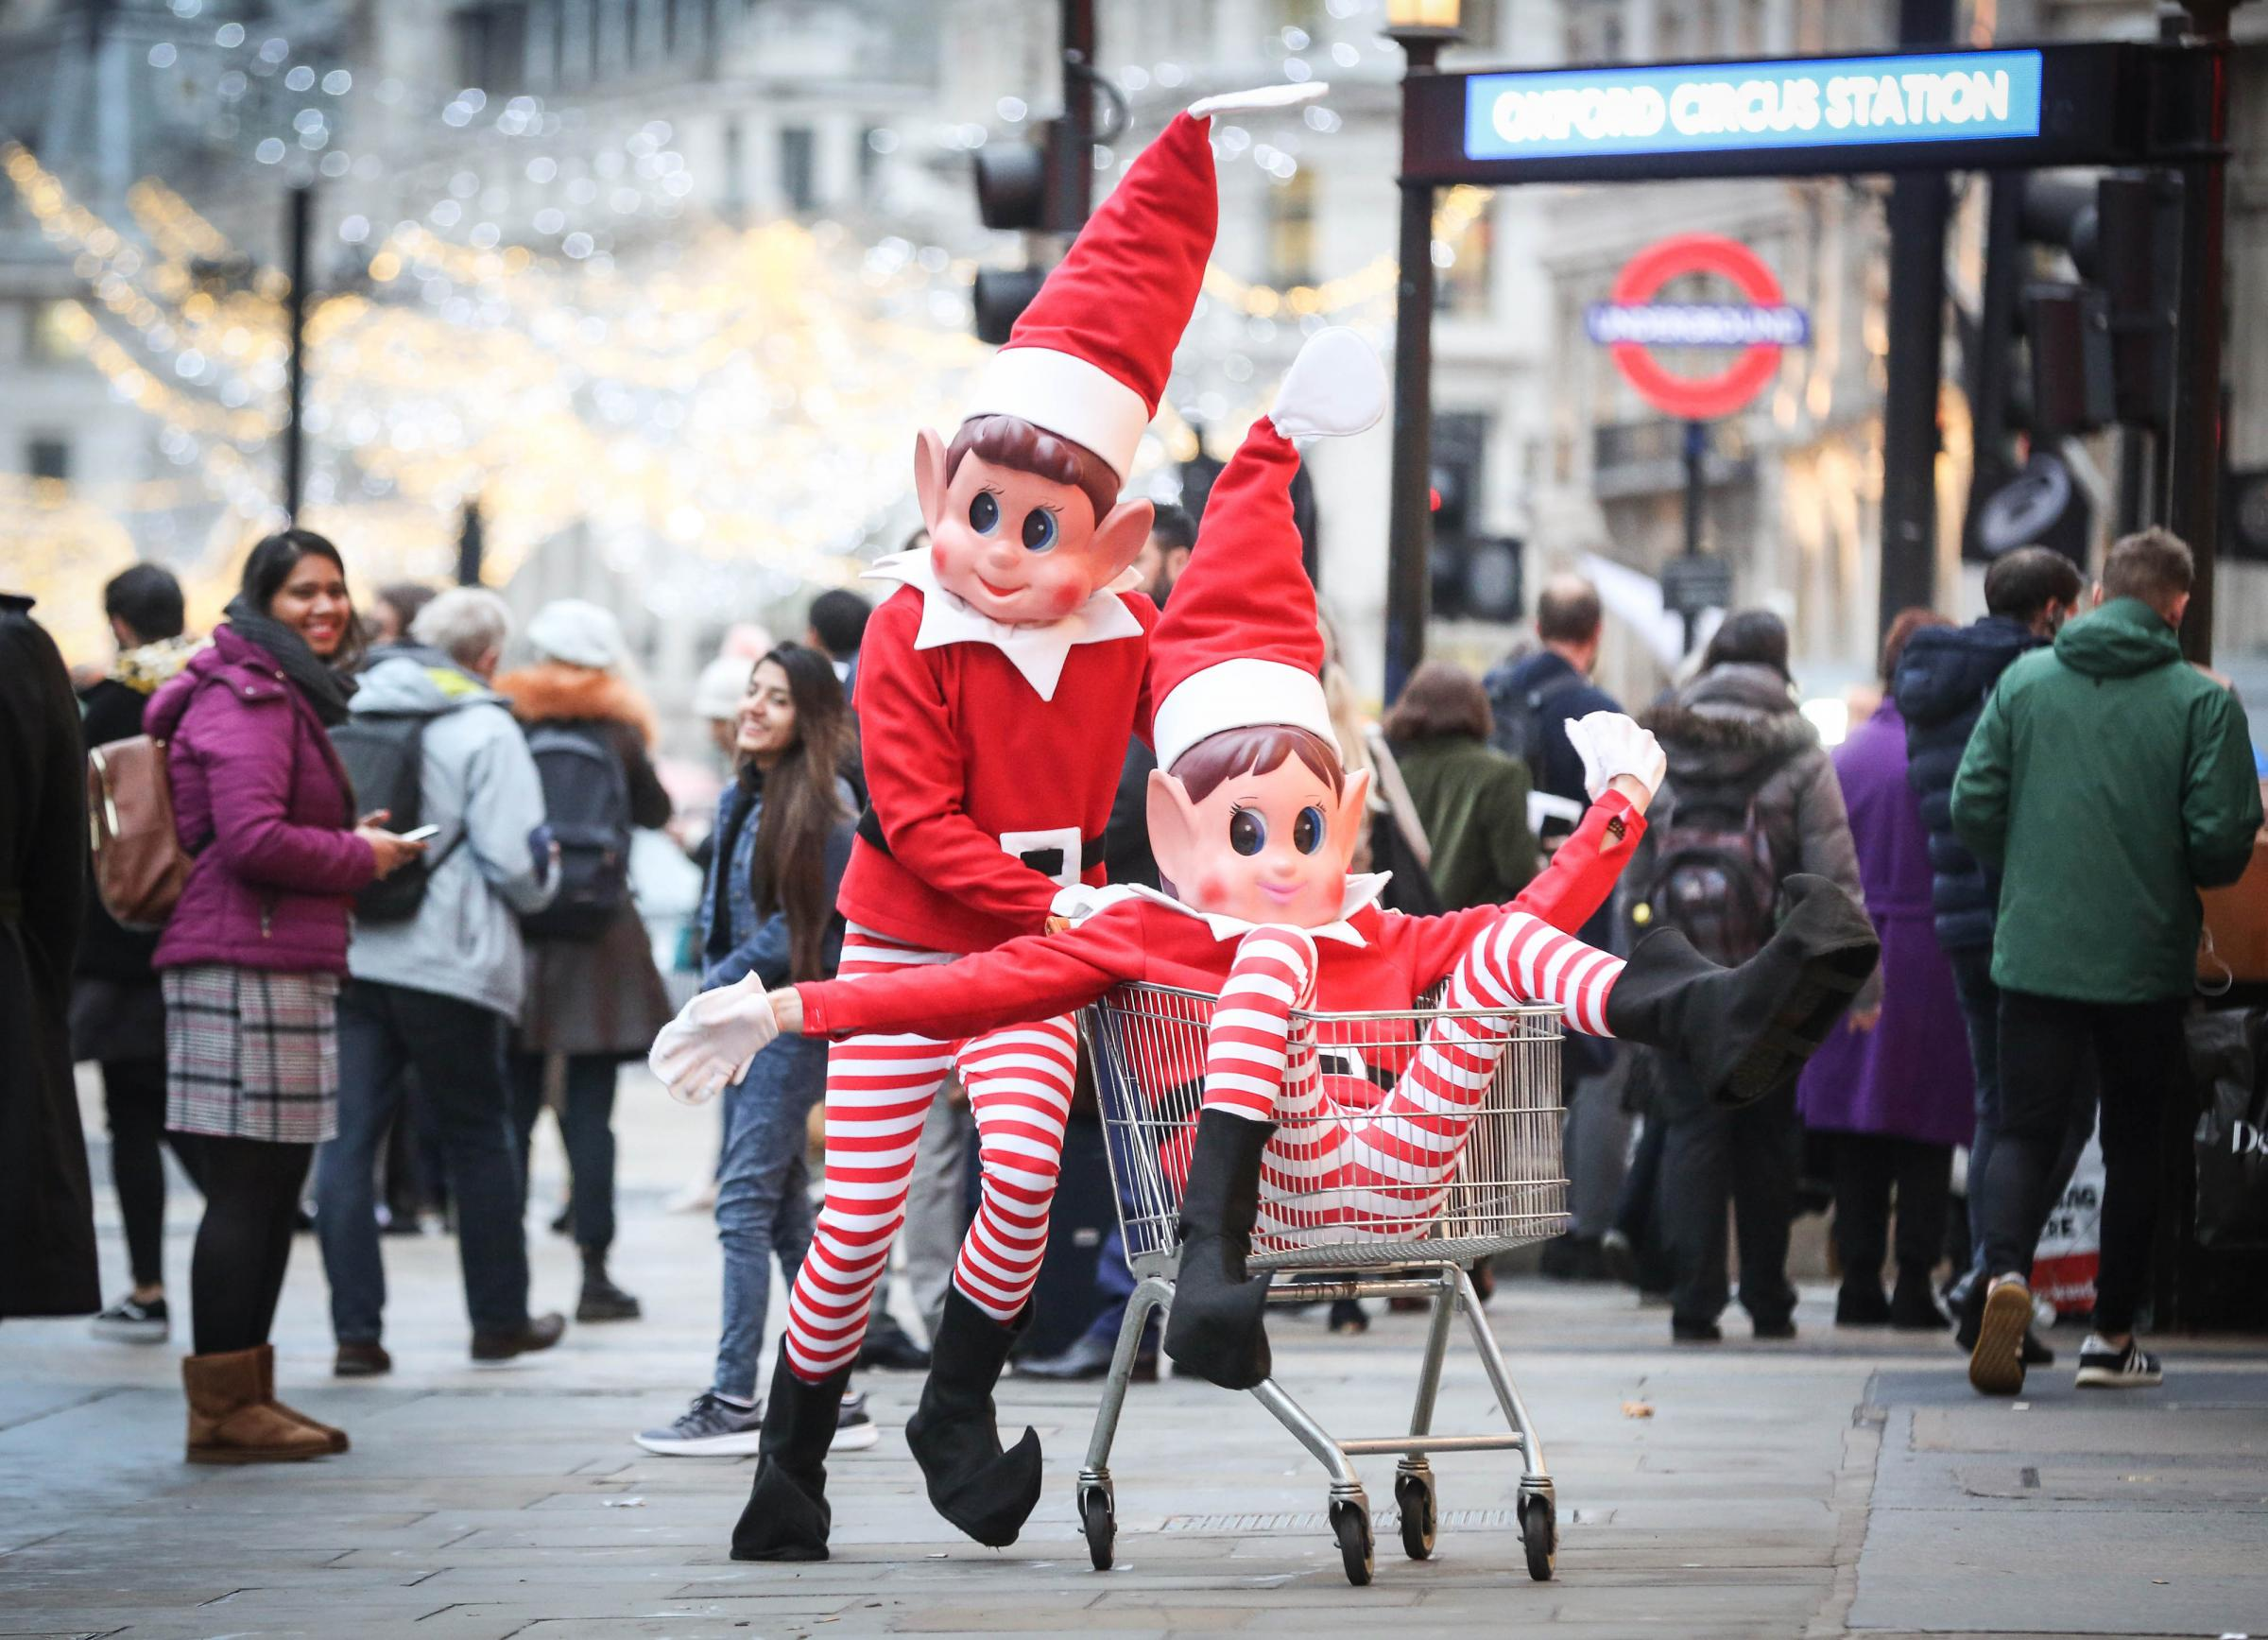 EDITORIAL USE ONLYElfie and Elvie from UK toy brand Elves BehavinÕ Badly cause mischief in Oxford Street in the run up to Christmas. PRESS ASSOCIATION Photo. Issue date: Tuesday December 4, 2018. The festive doll range, which launched in 2017, has